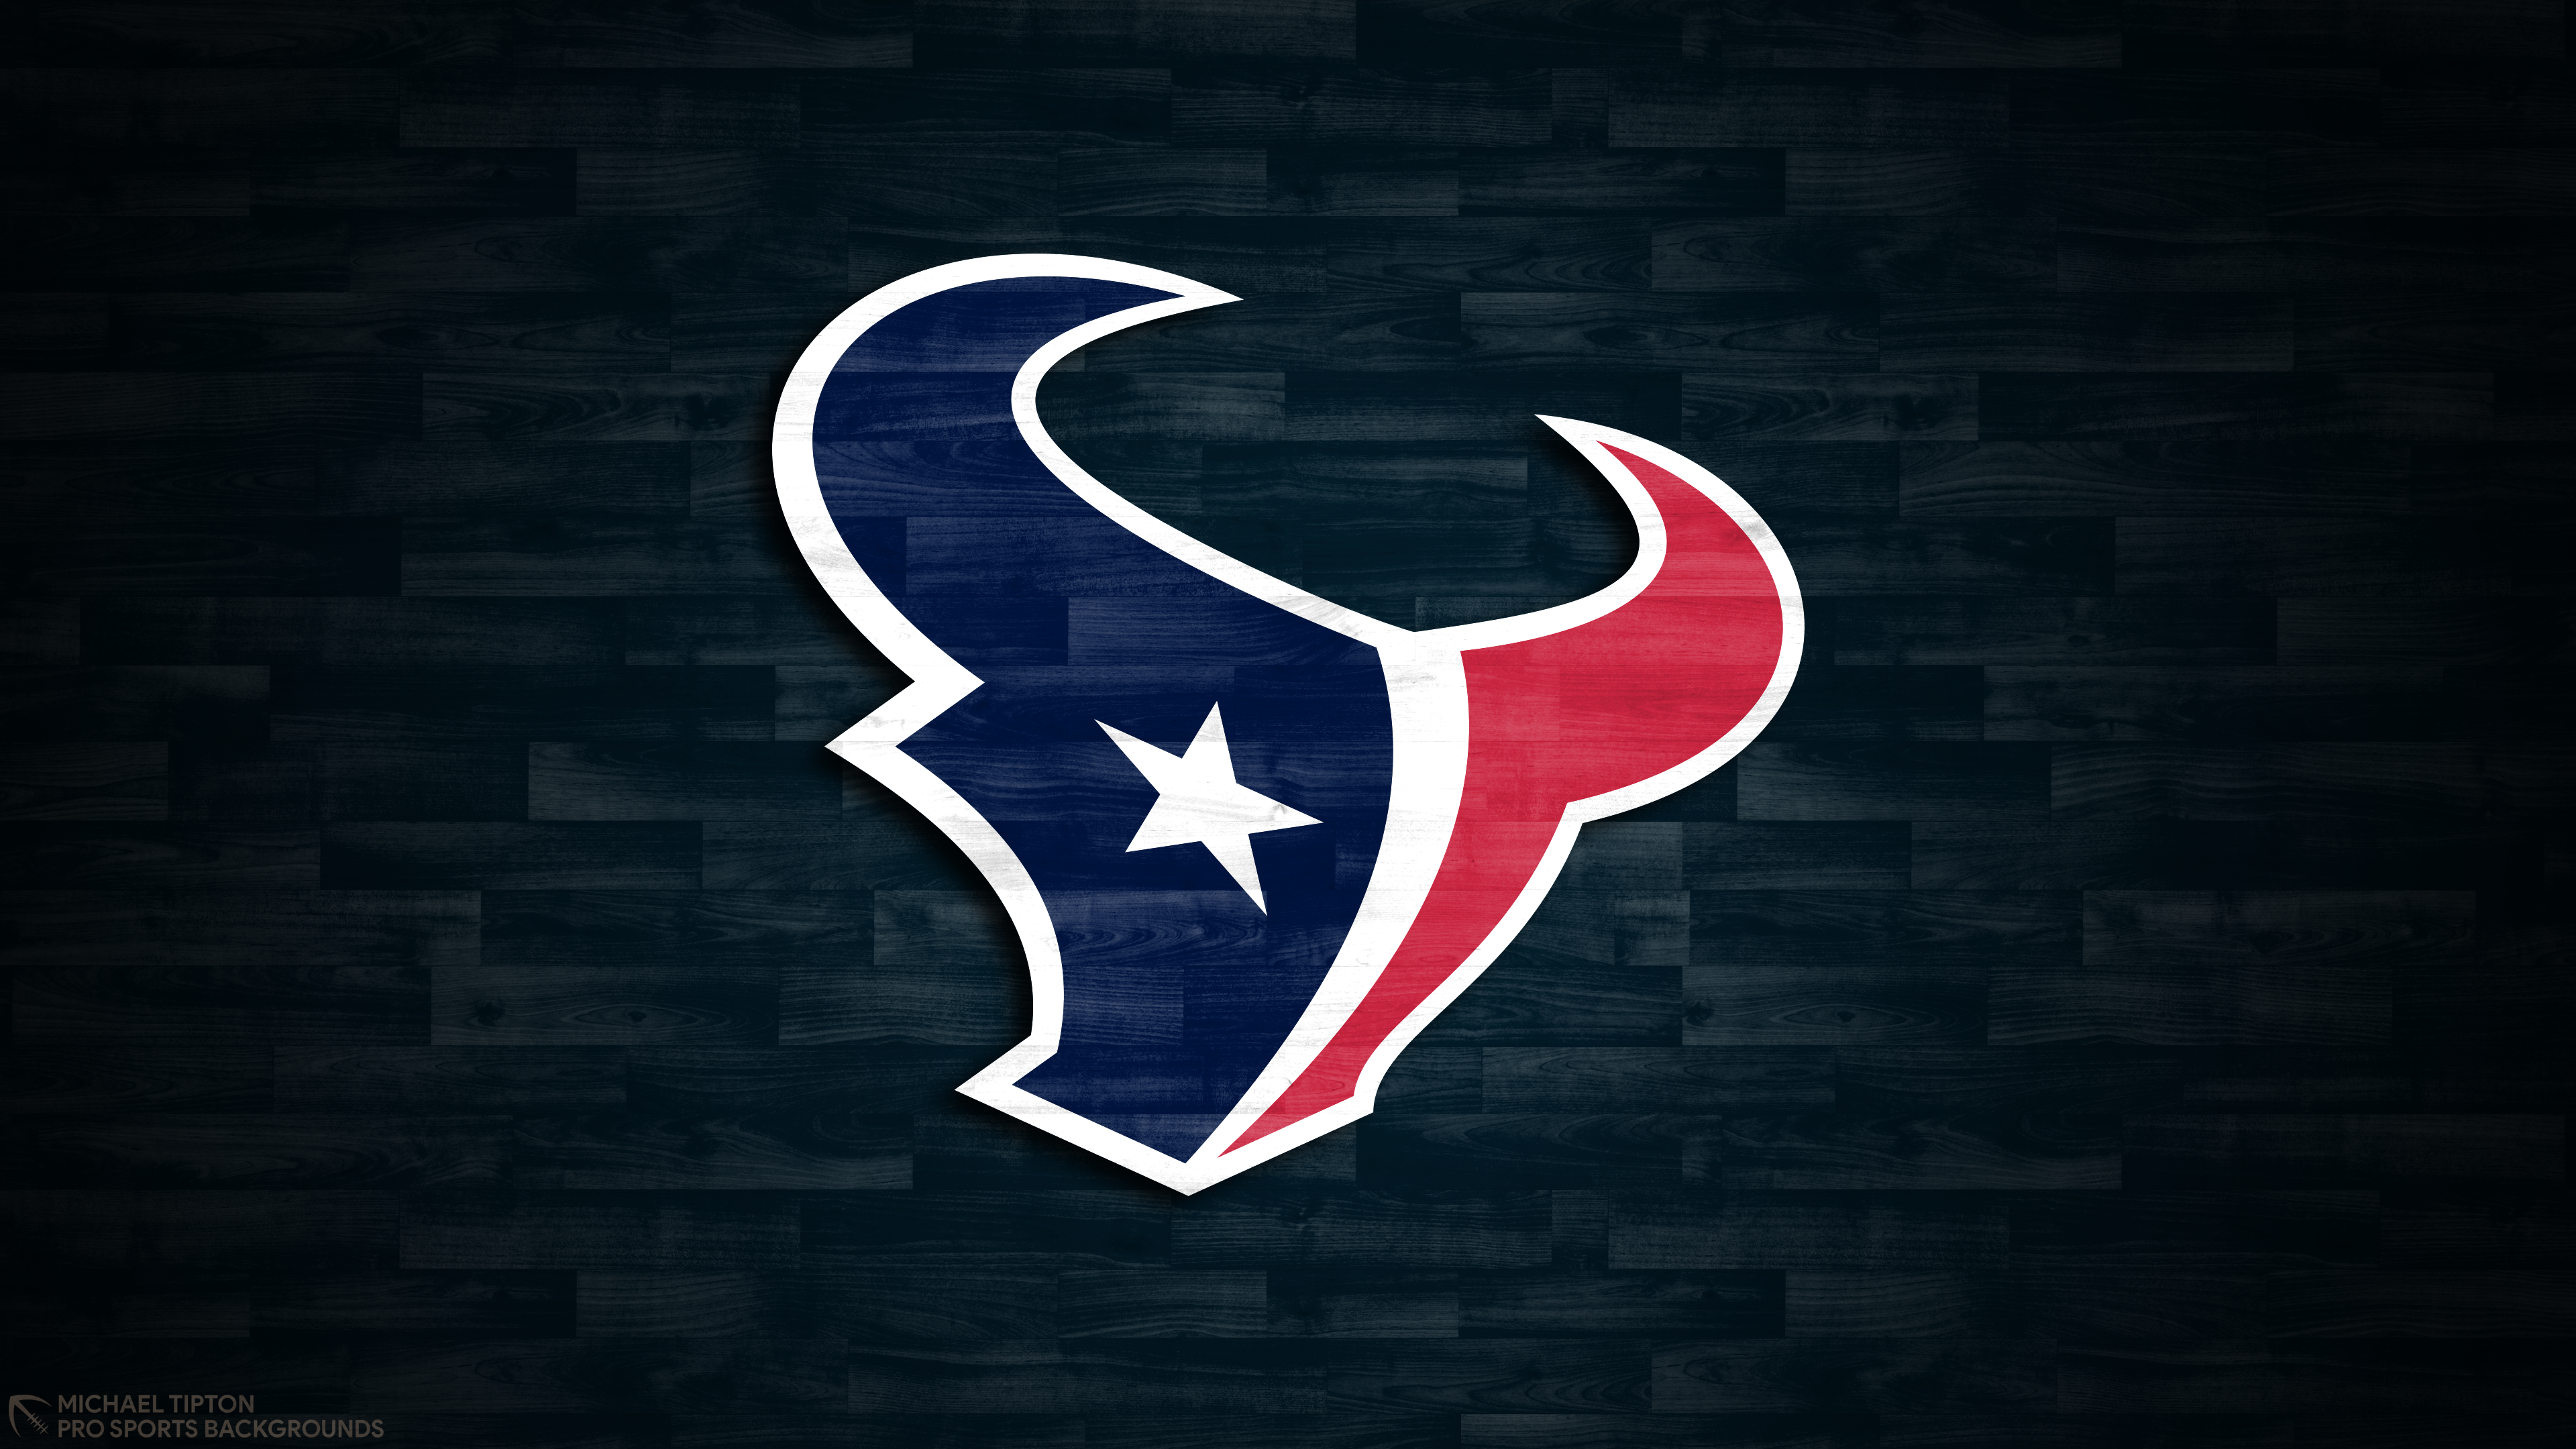 2019 Houston Texans Wallpapers Pro Sports Backgrounds 3840x2160